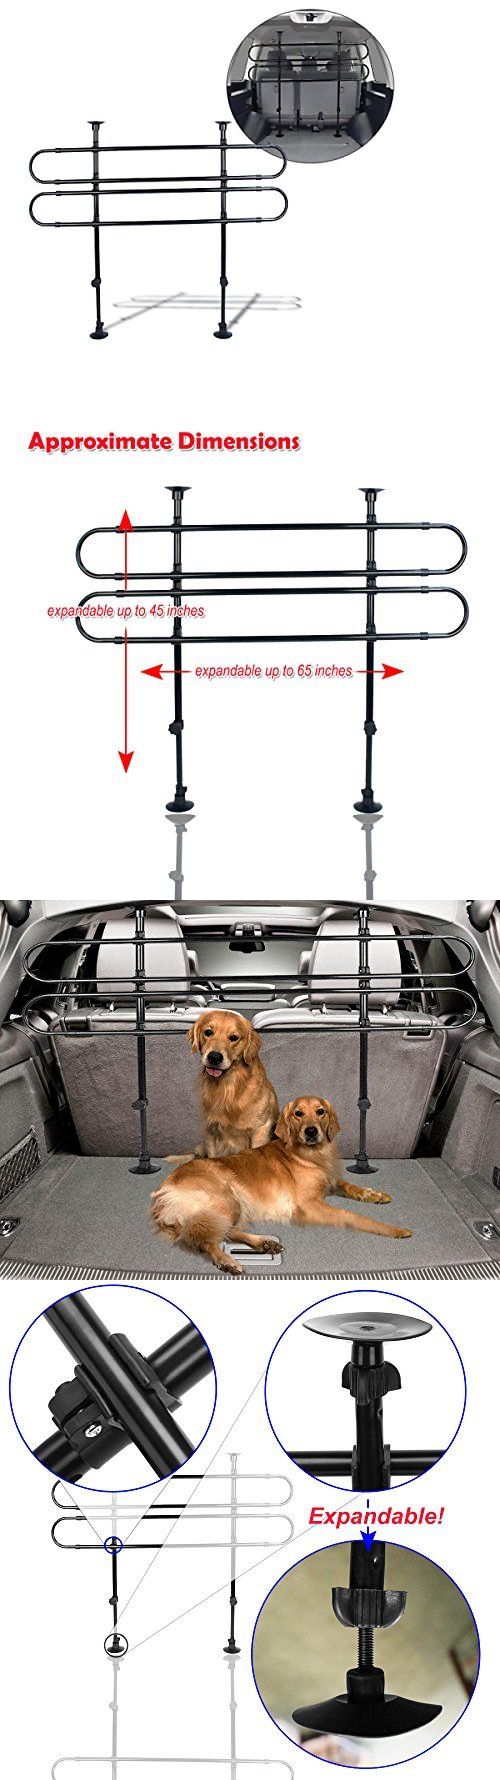 Car seats and barriers fence pet dog cages car vehicle